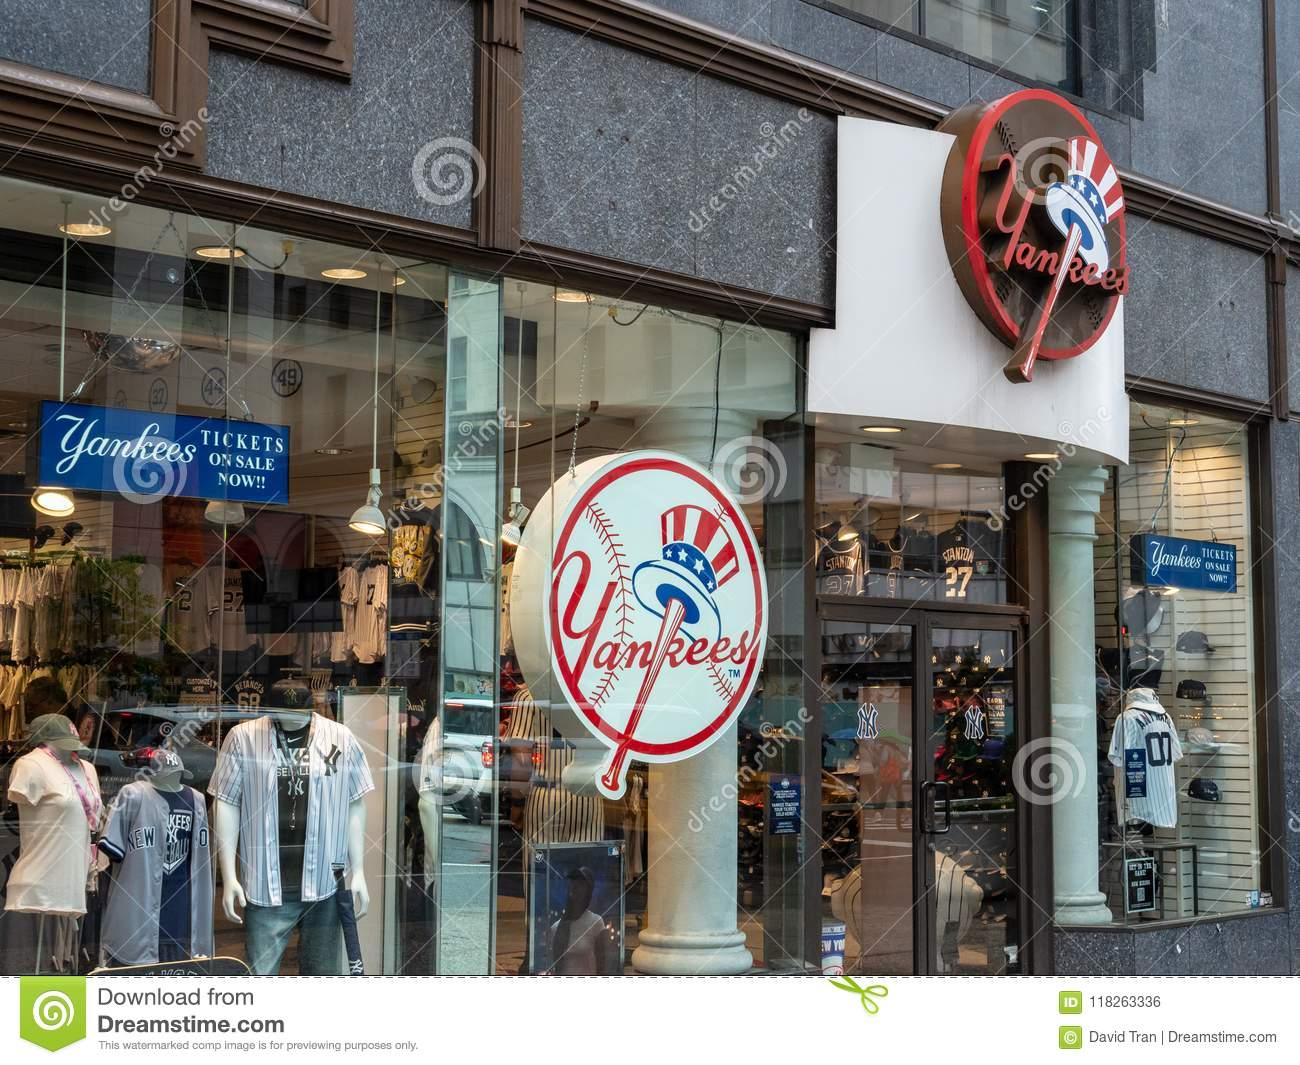 Store Front Of New York Yankees Team Store On 5th Avenue In New ... bf0c79dbb83